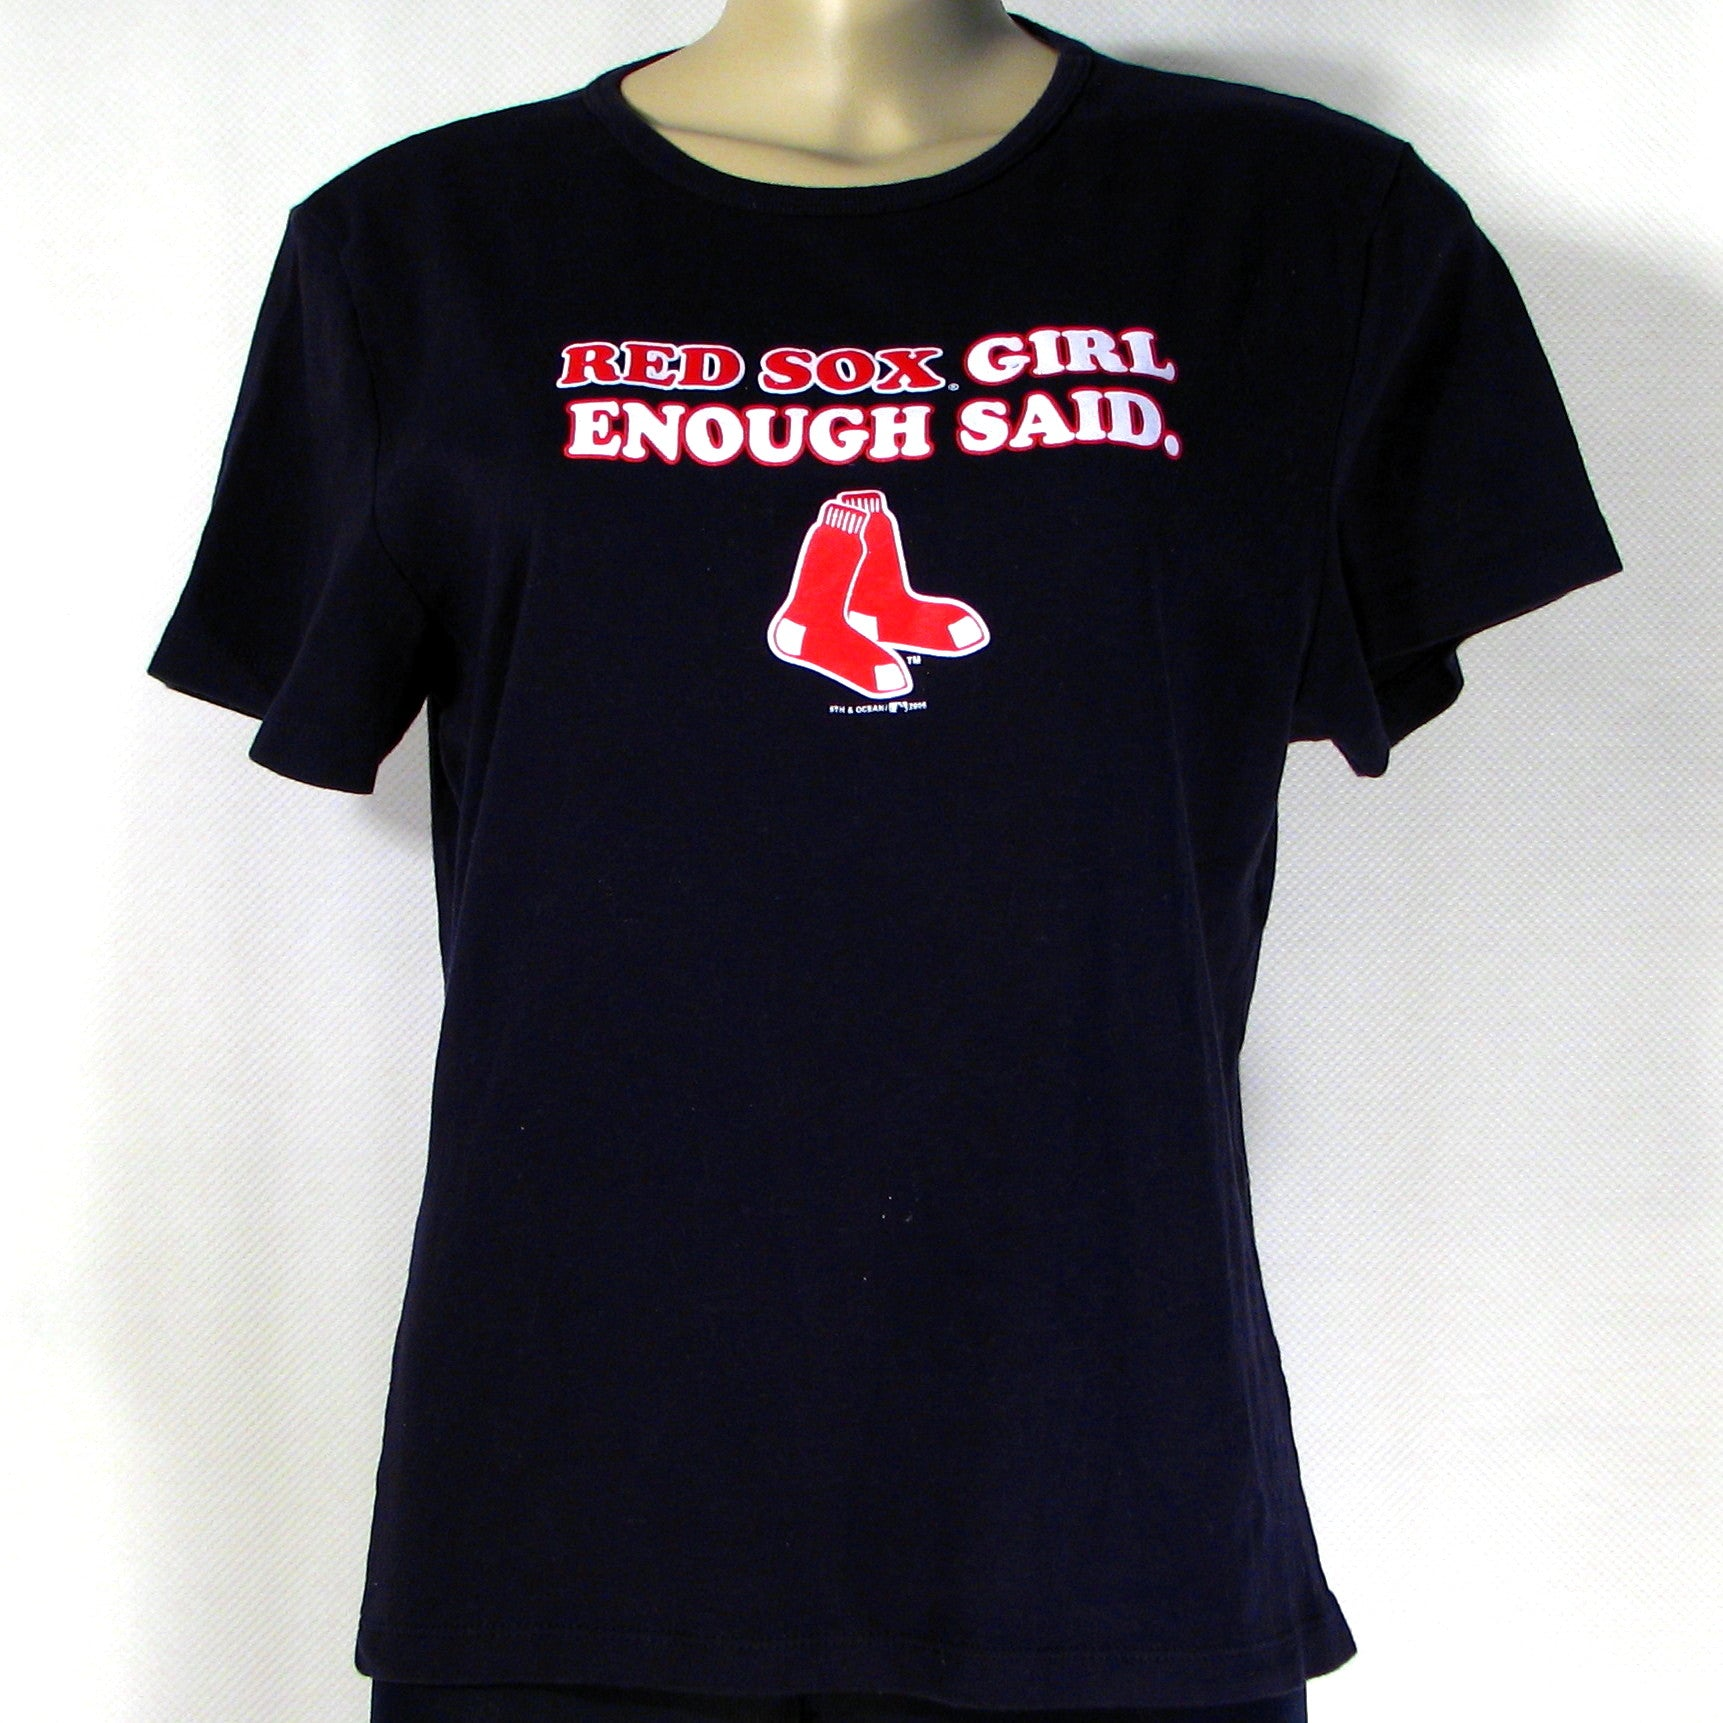 23c63f975 Girl Red Sox Shirt - Nils Stucki Kieferorthopäde